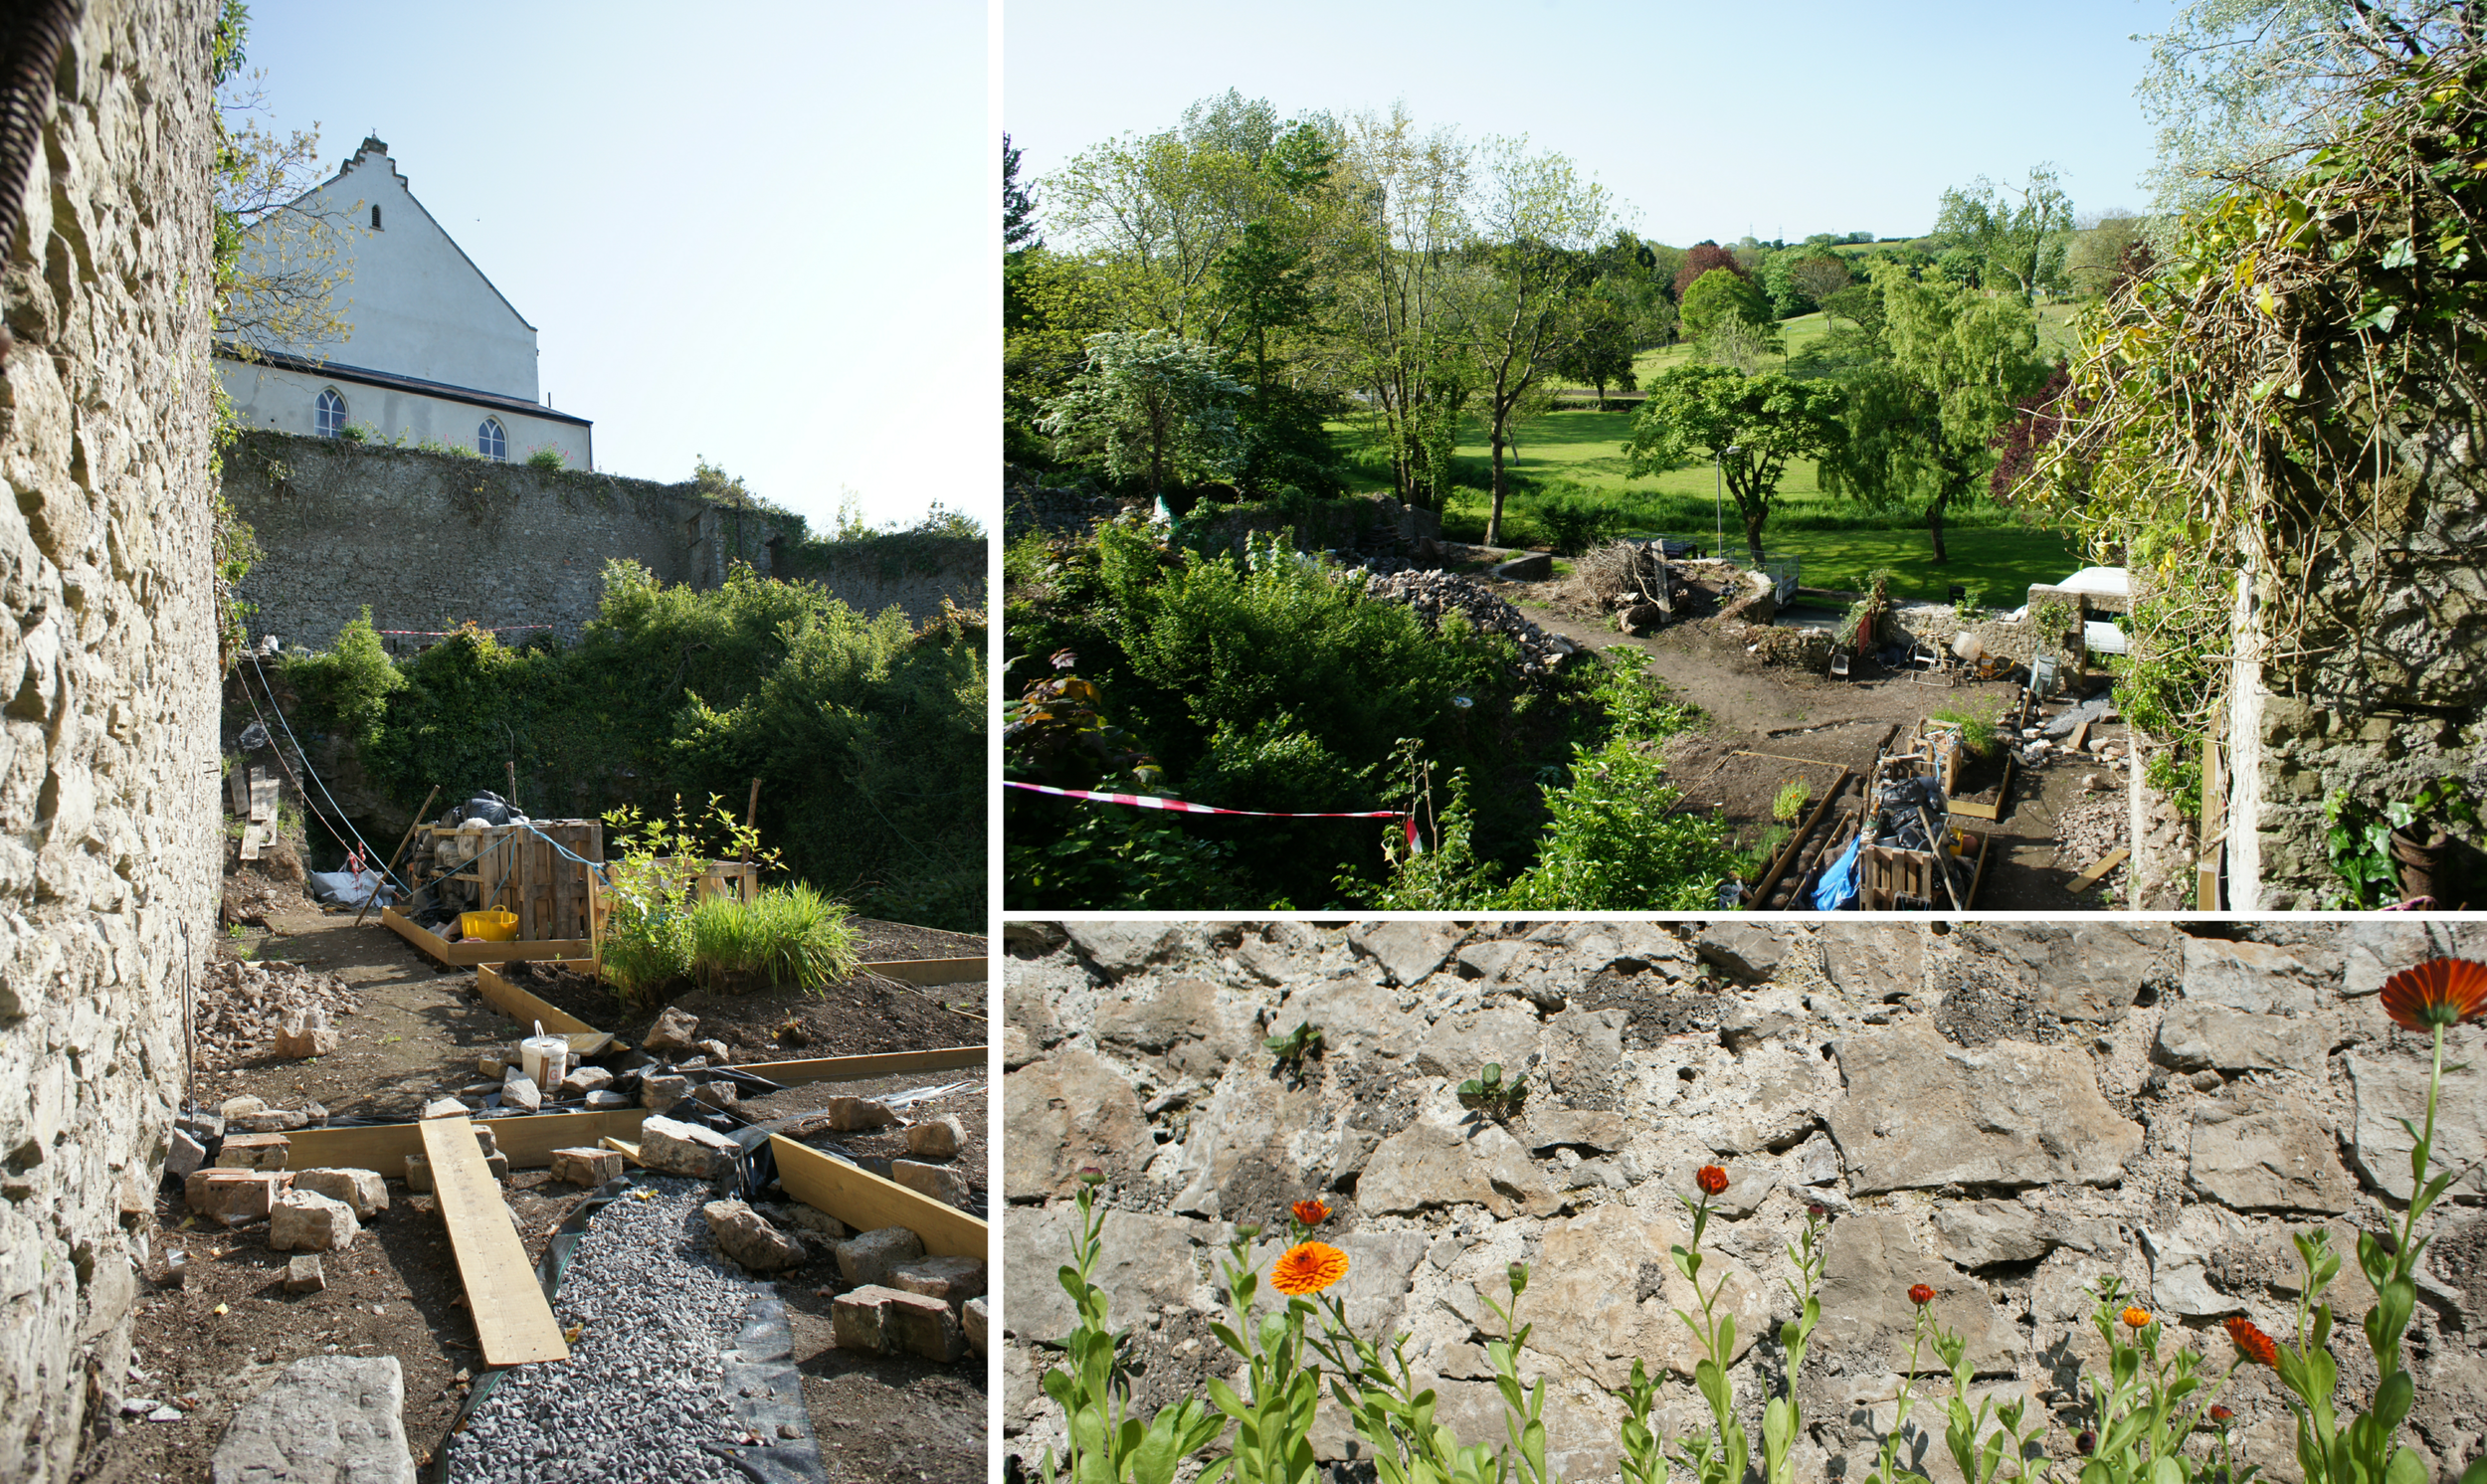 The Pilot Project site where work to conserve the Pembroke town walls is beginning.